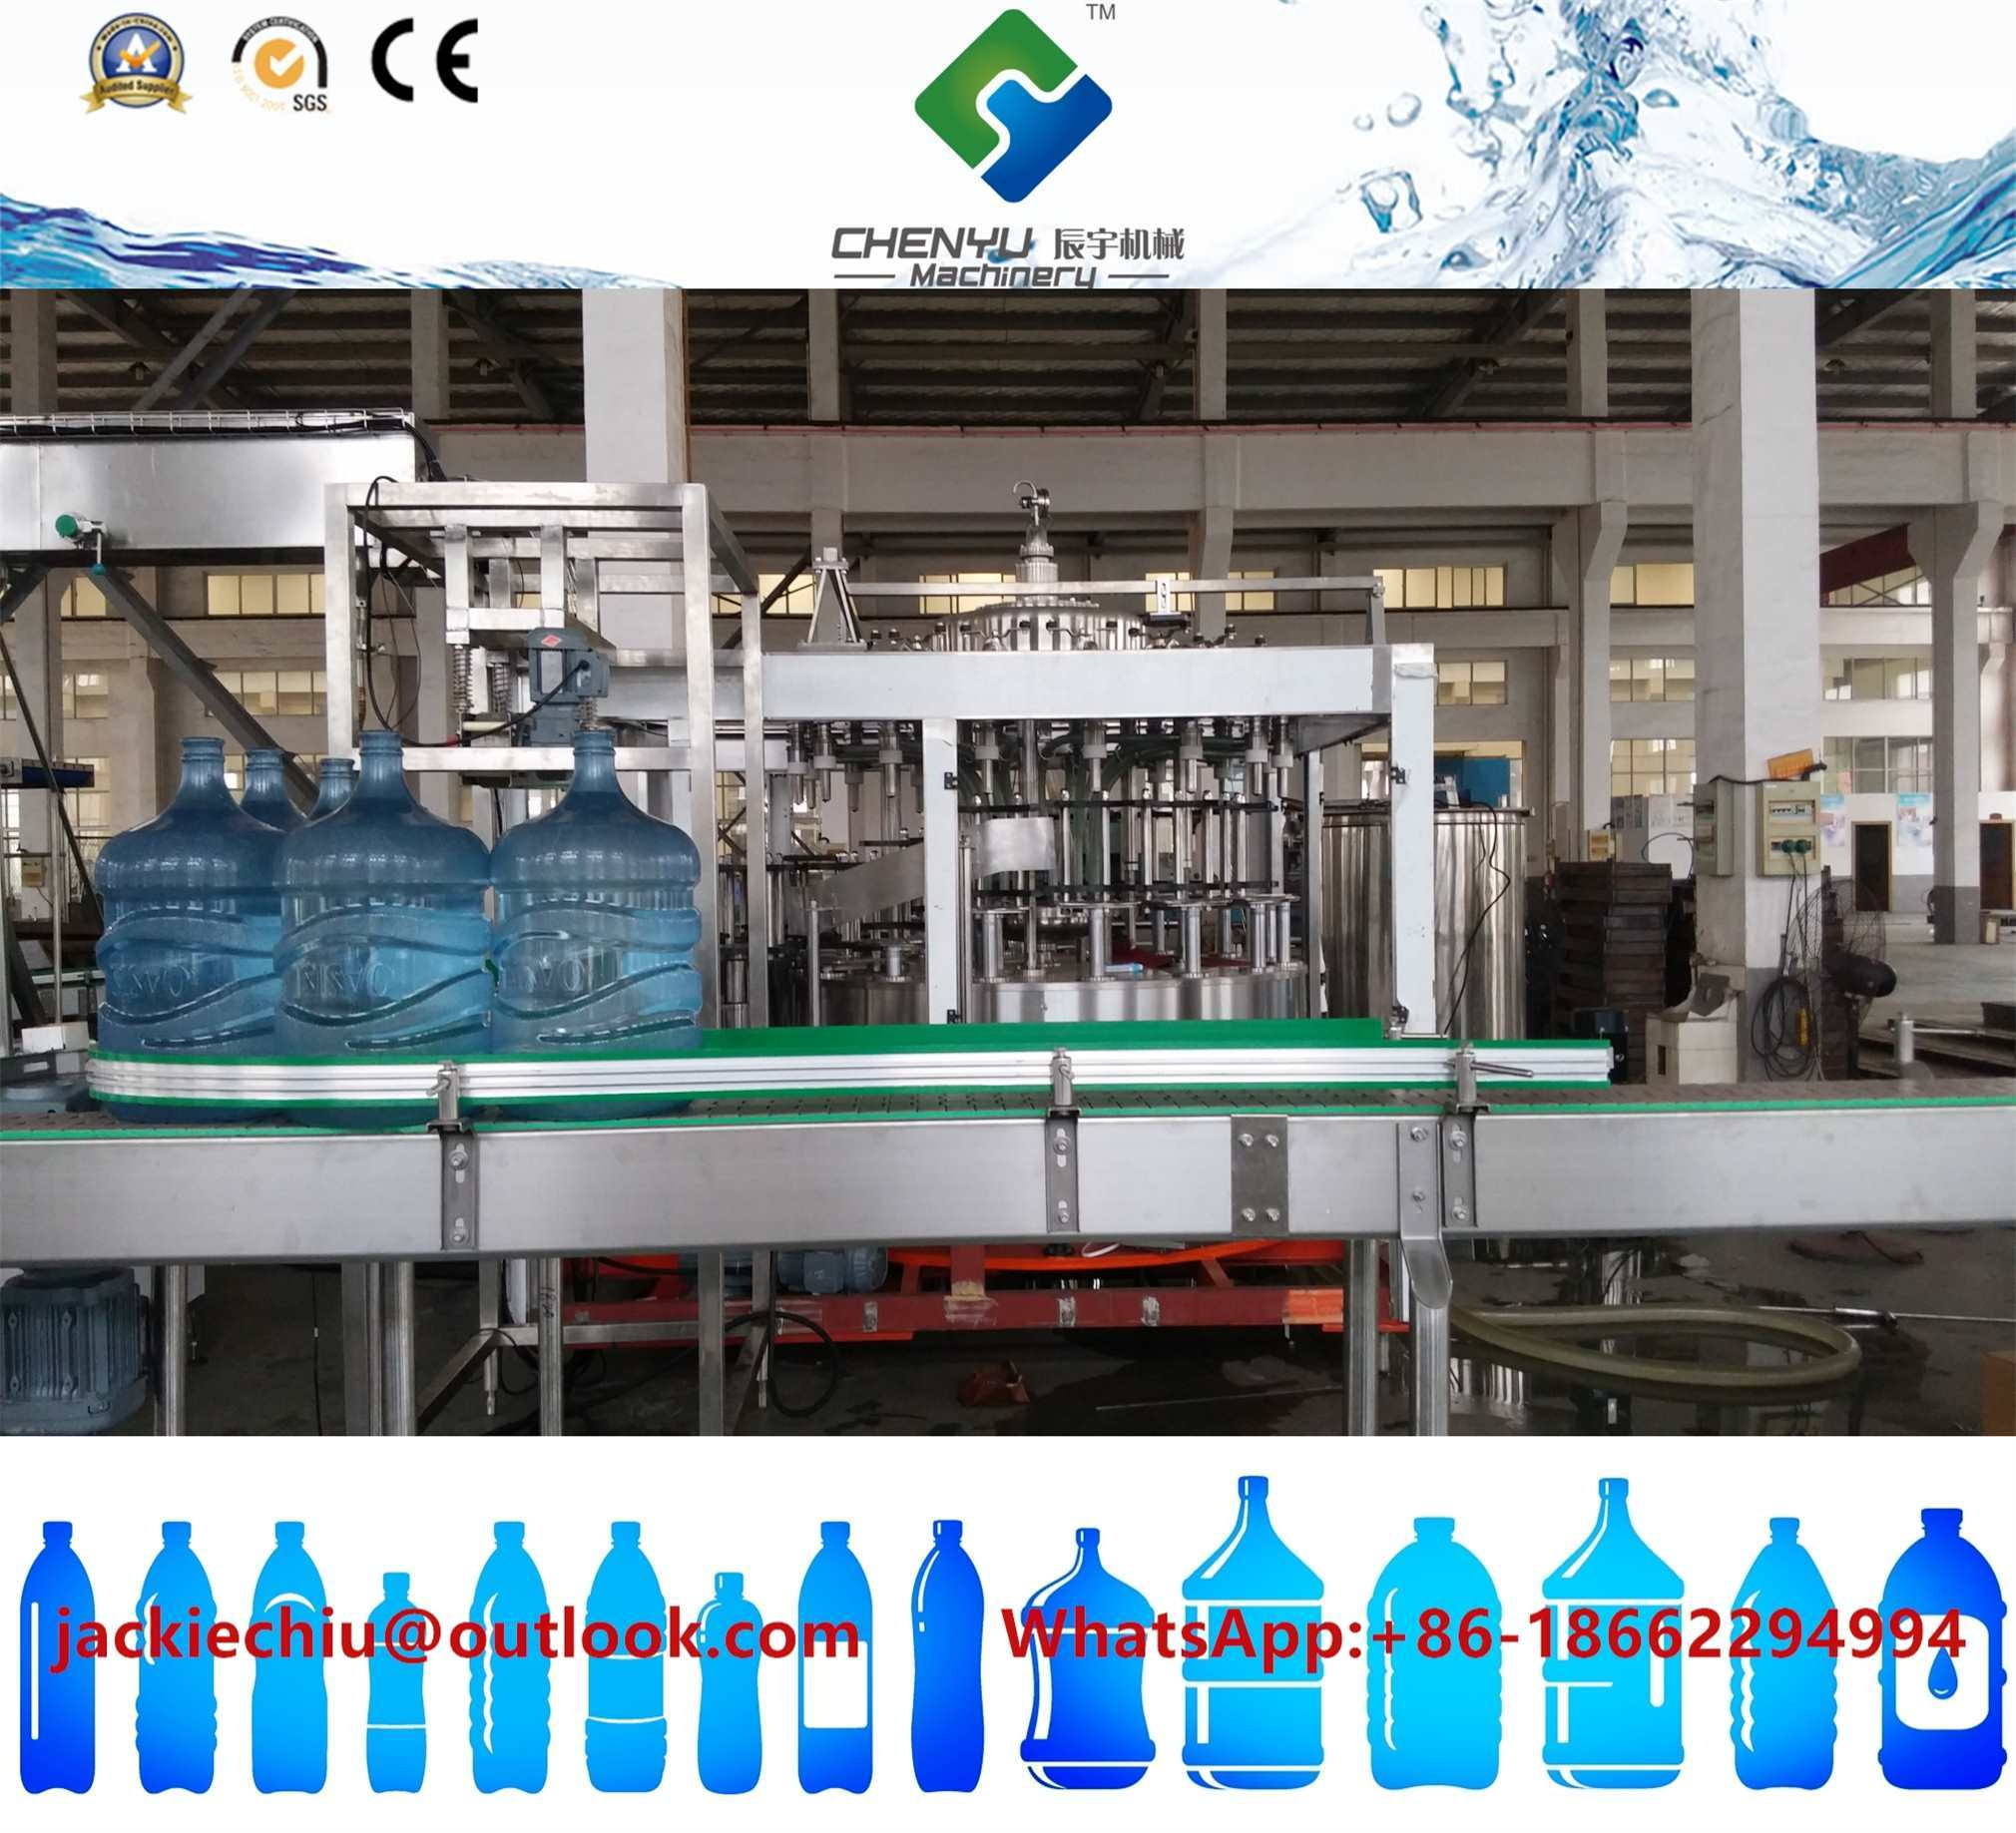 300bph 5 Gallon Water Bottling Machine